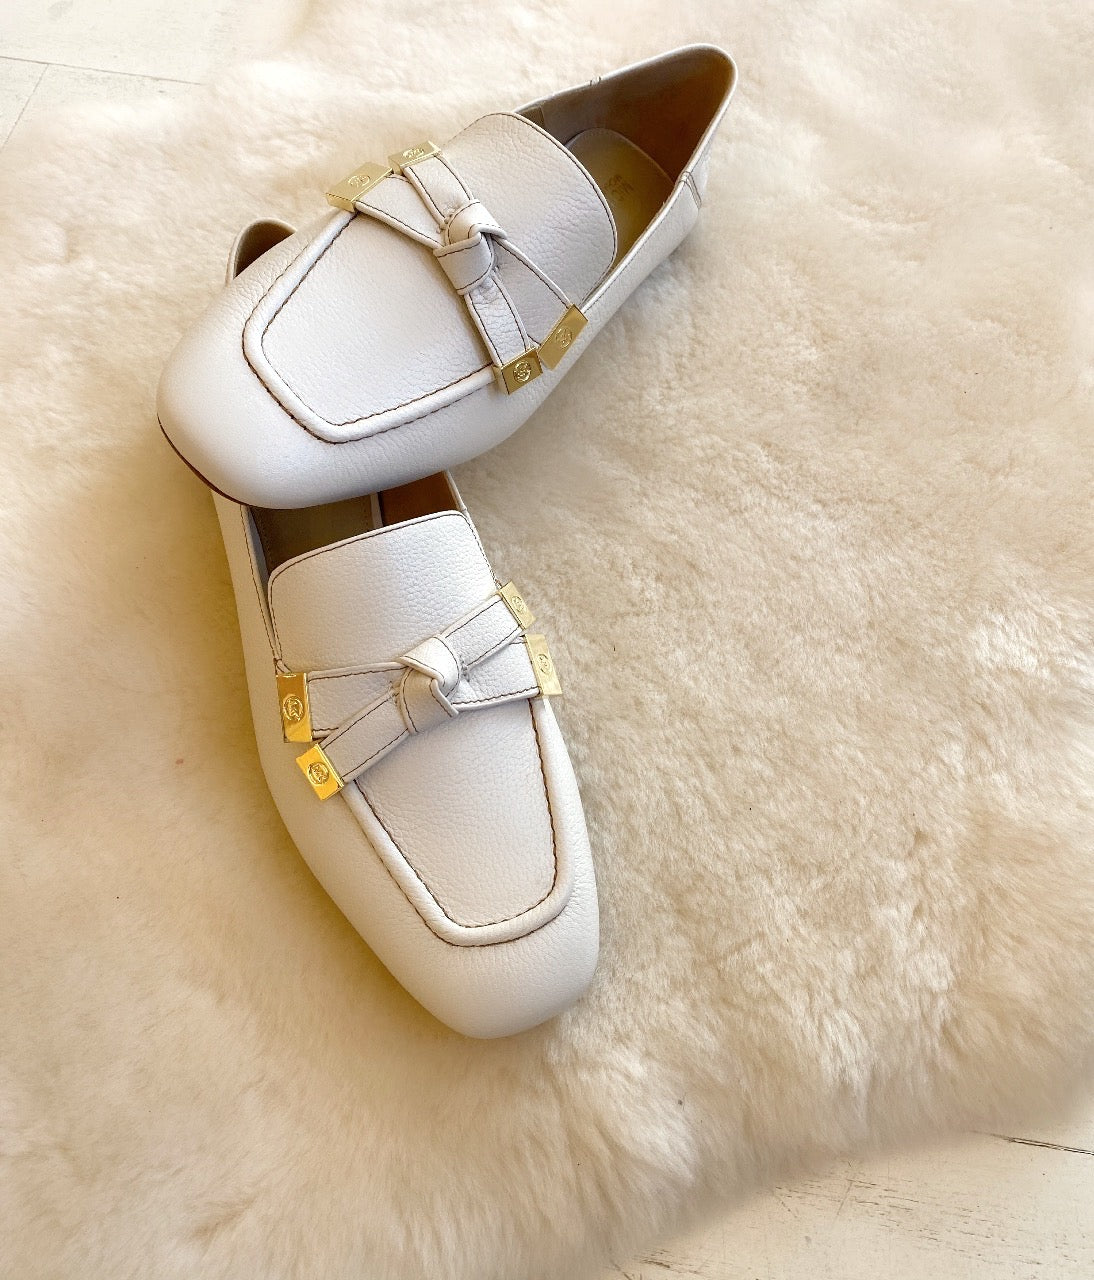 MICHAEL KORS - RIPLEY LOAFER IN LIGHT CREAM